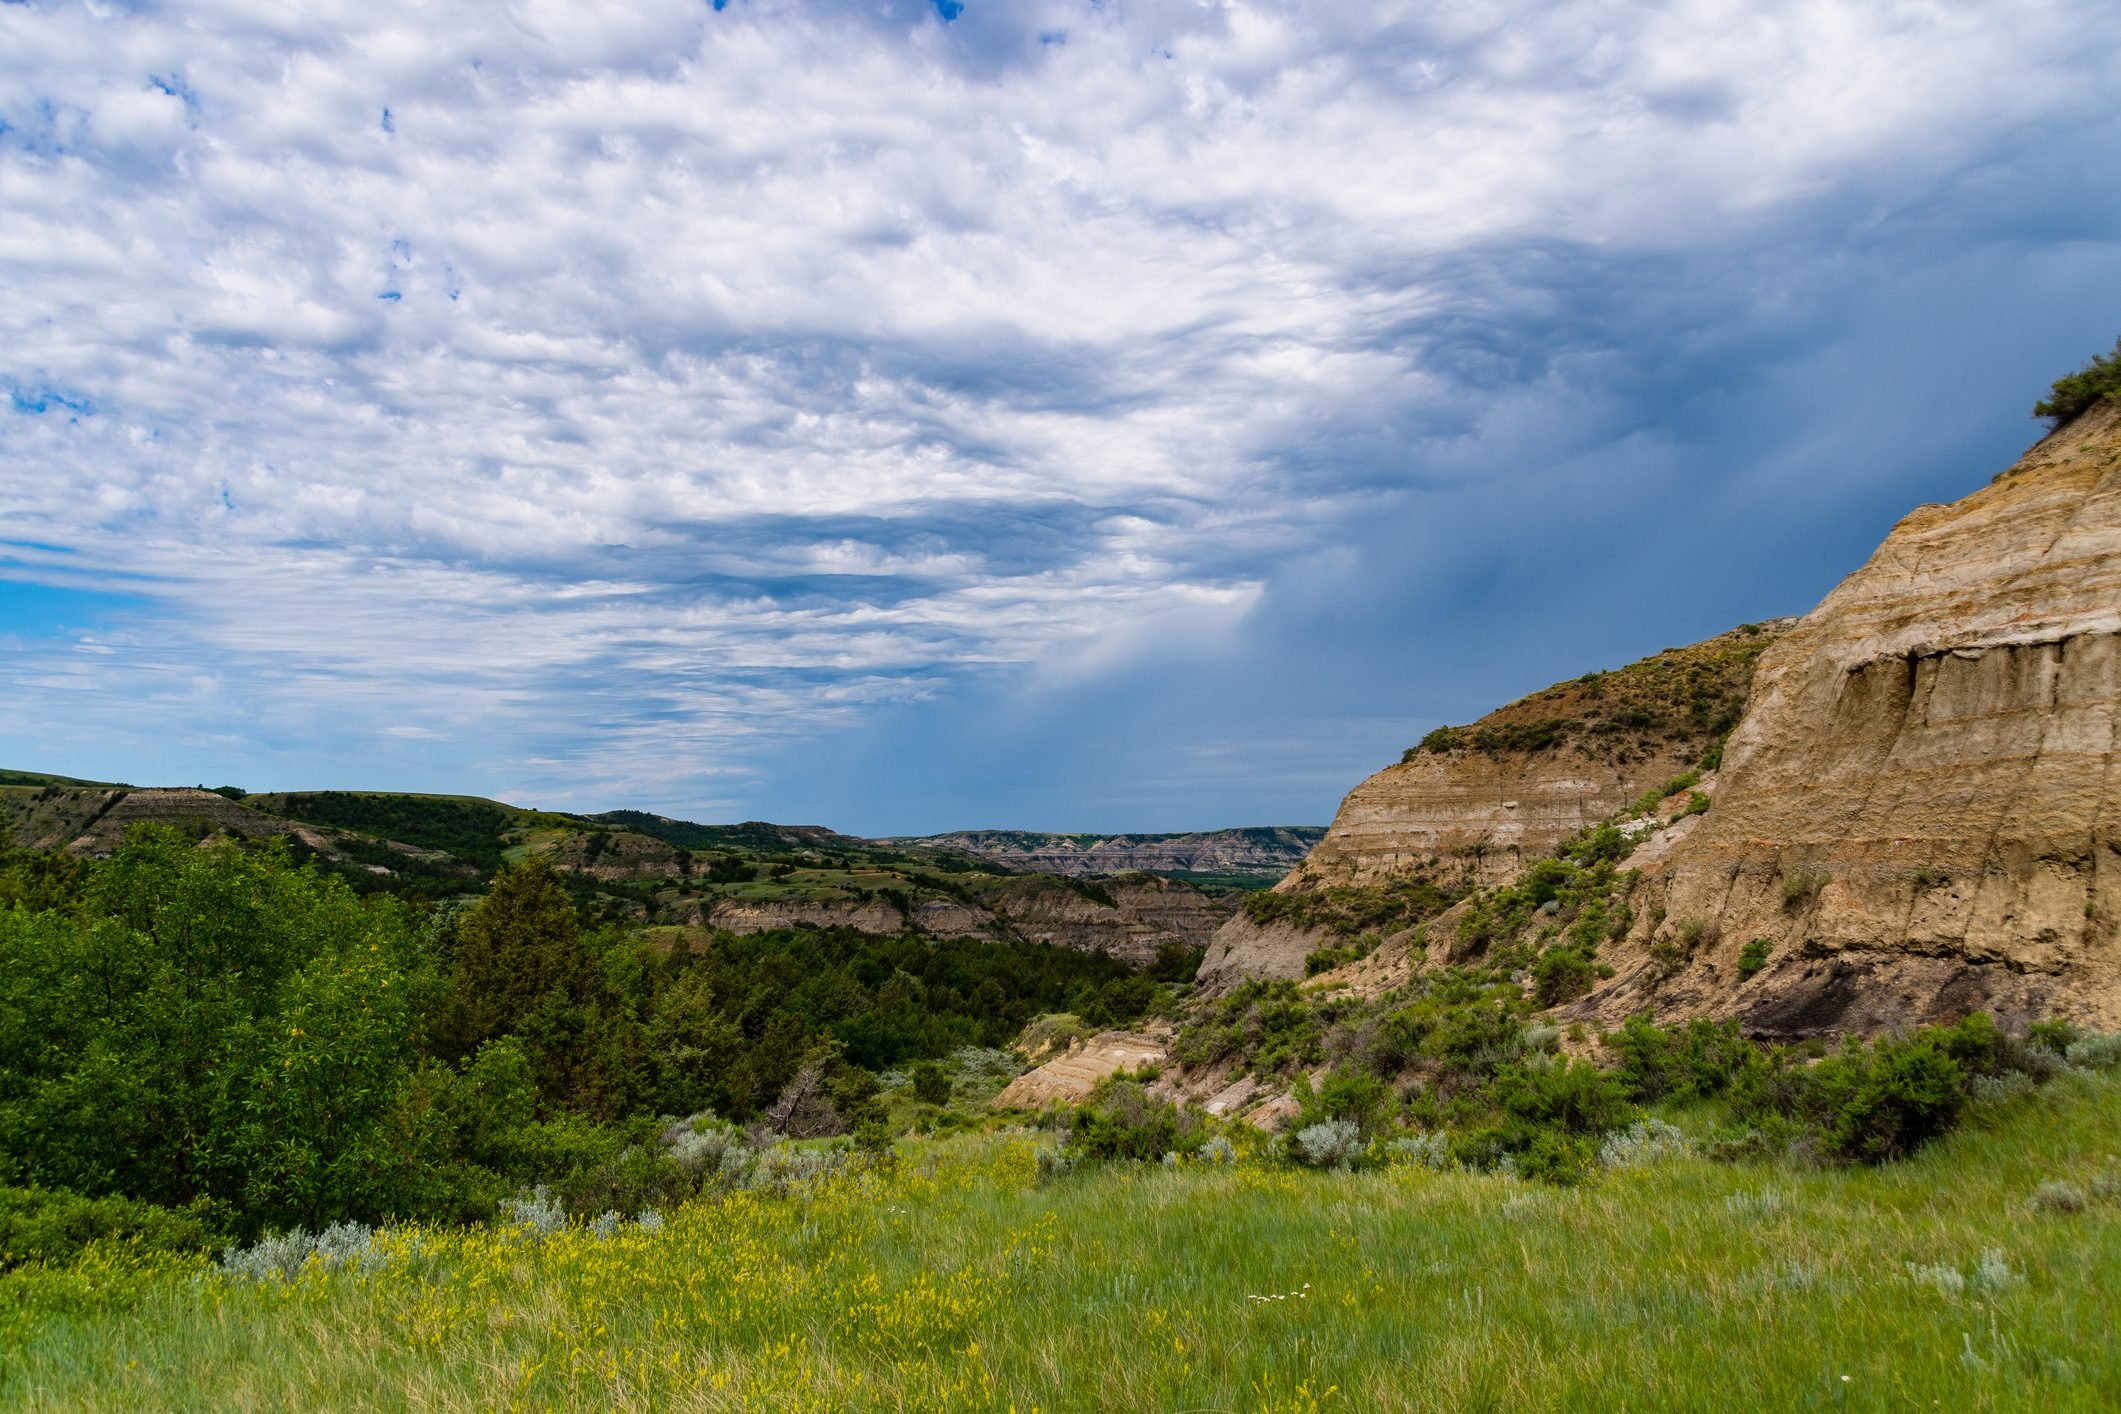 Landscapes of Theodore Roosevelt National Park in July